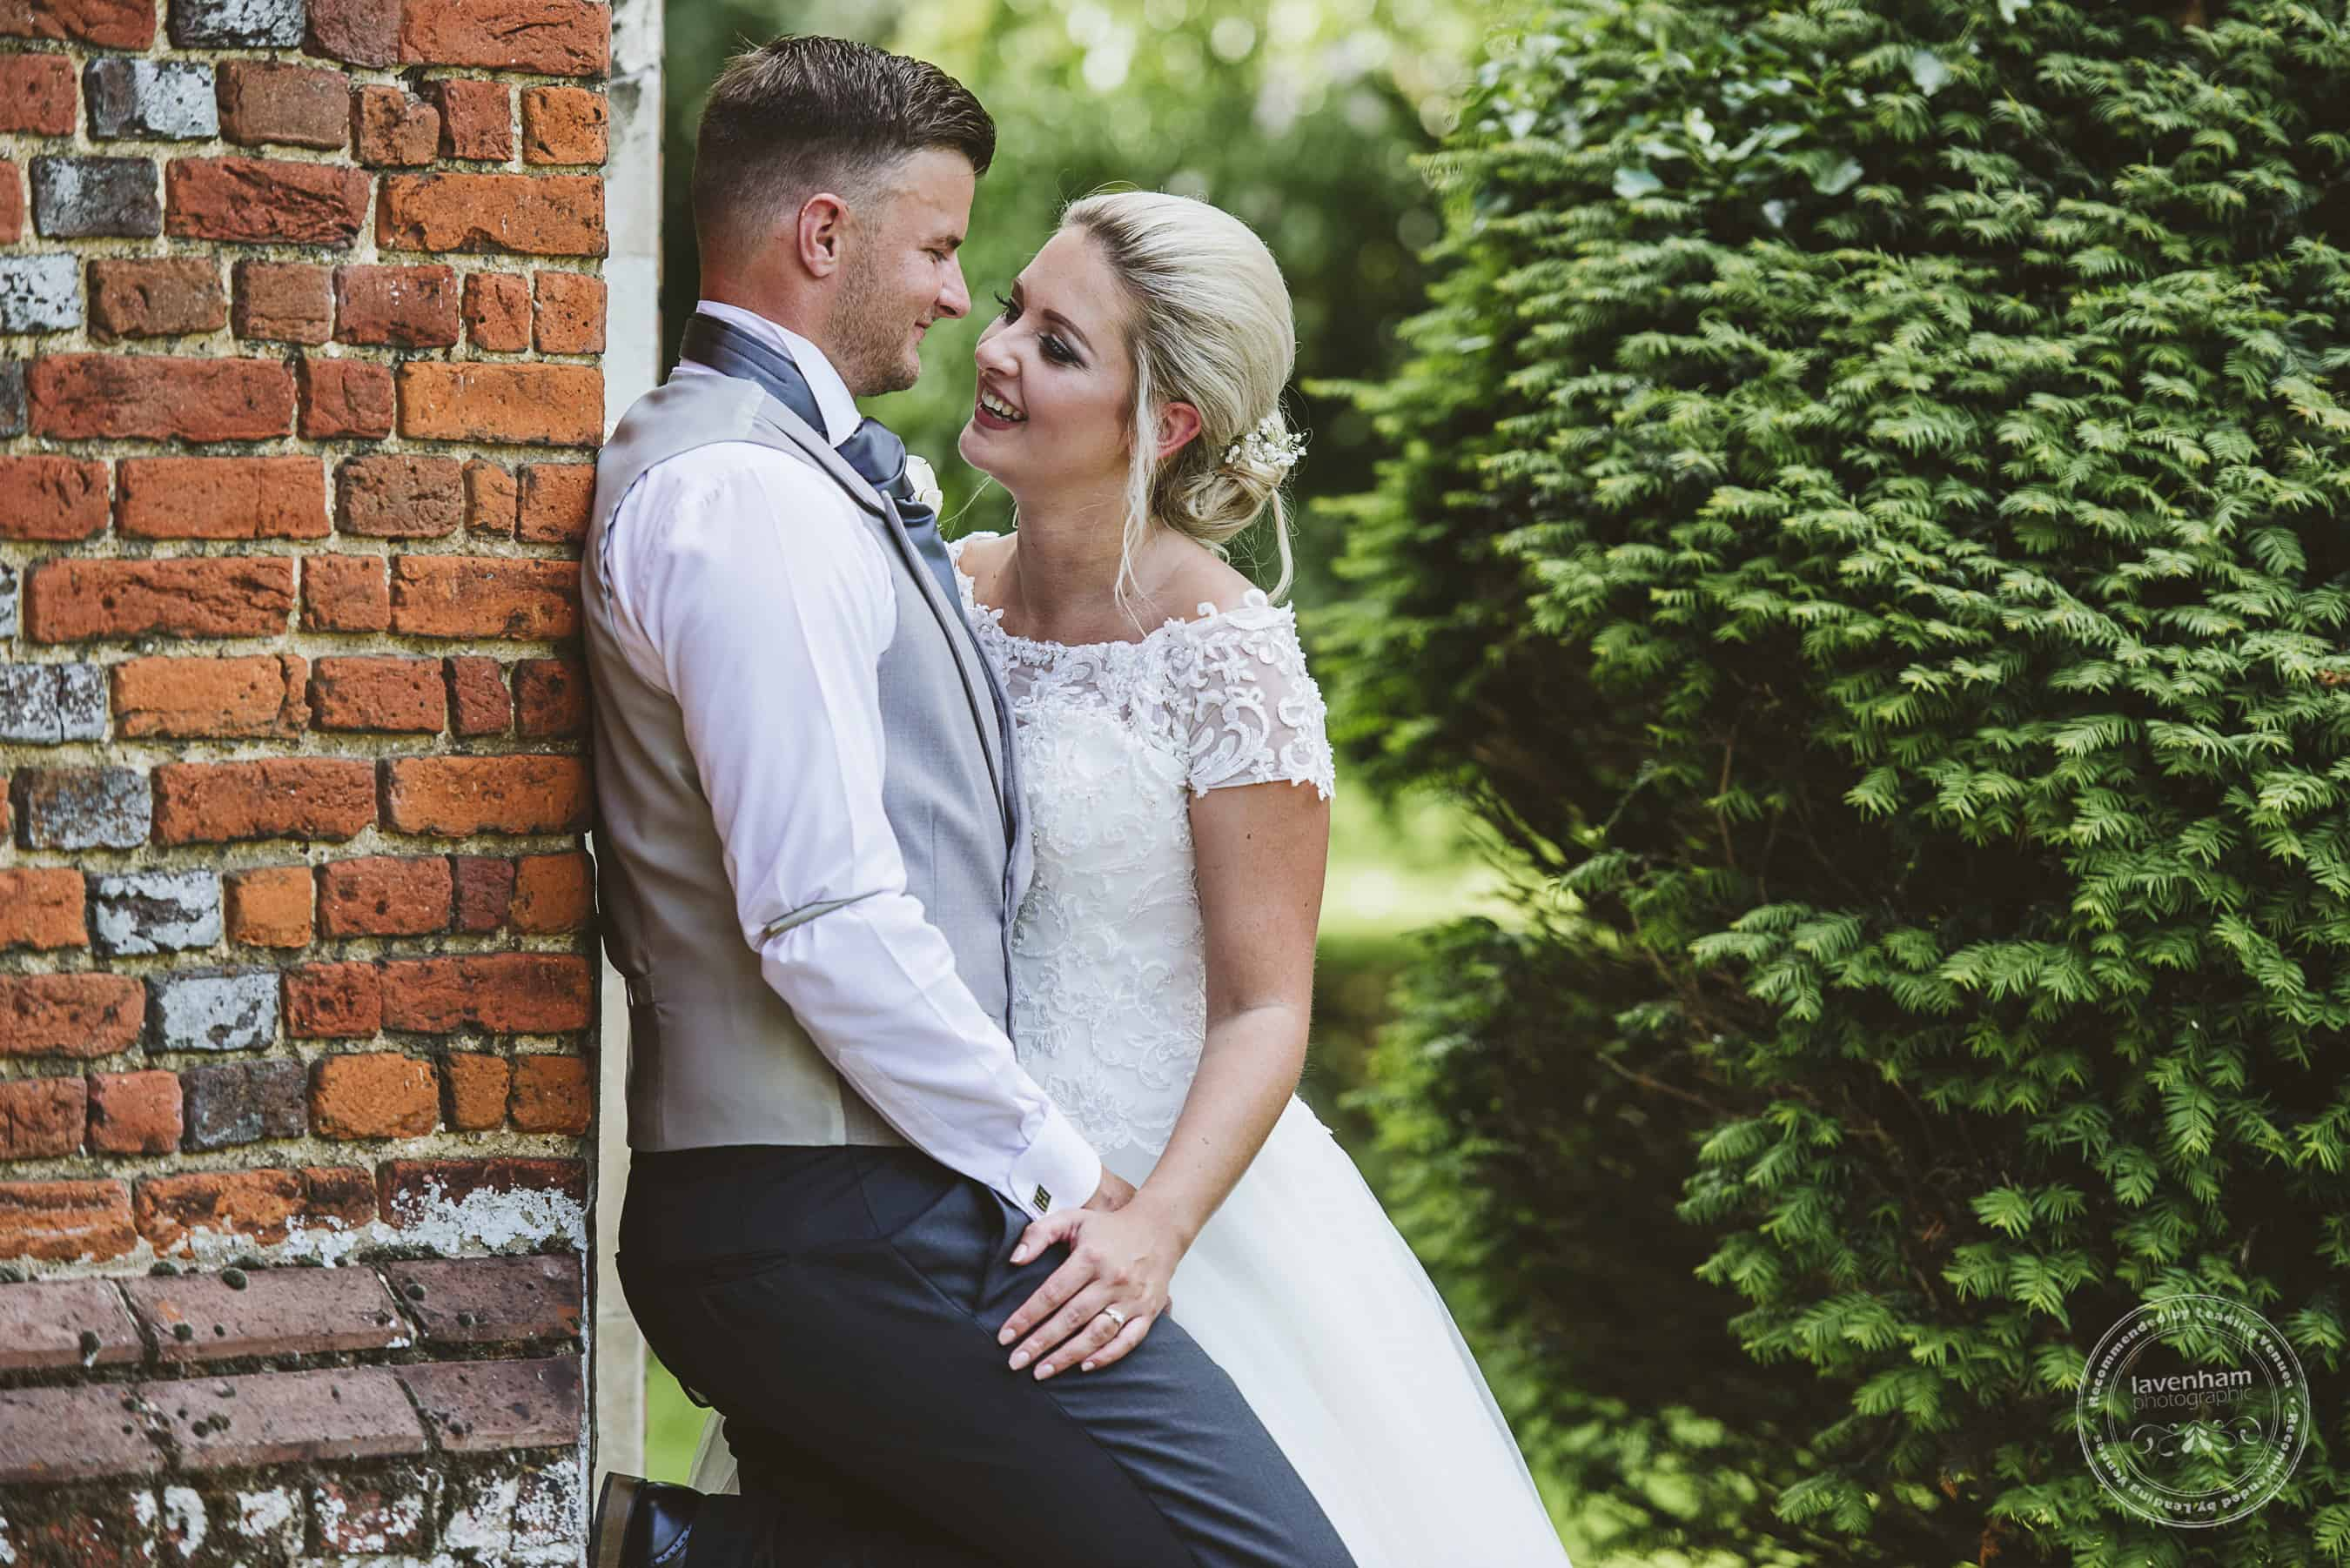 030618 Leez Priory Wedding Photography Lavenham Photographic 073